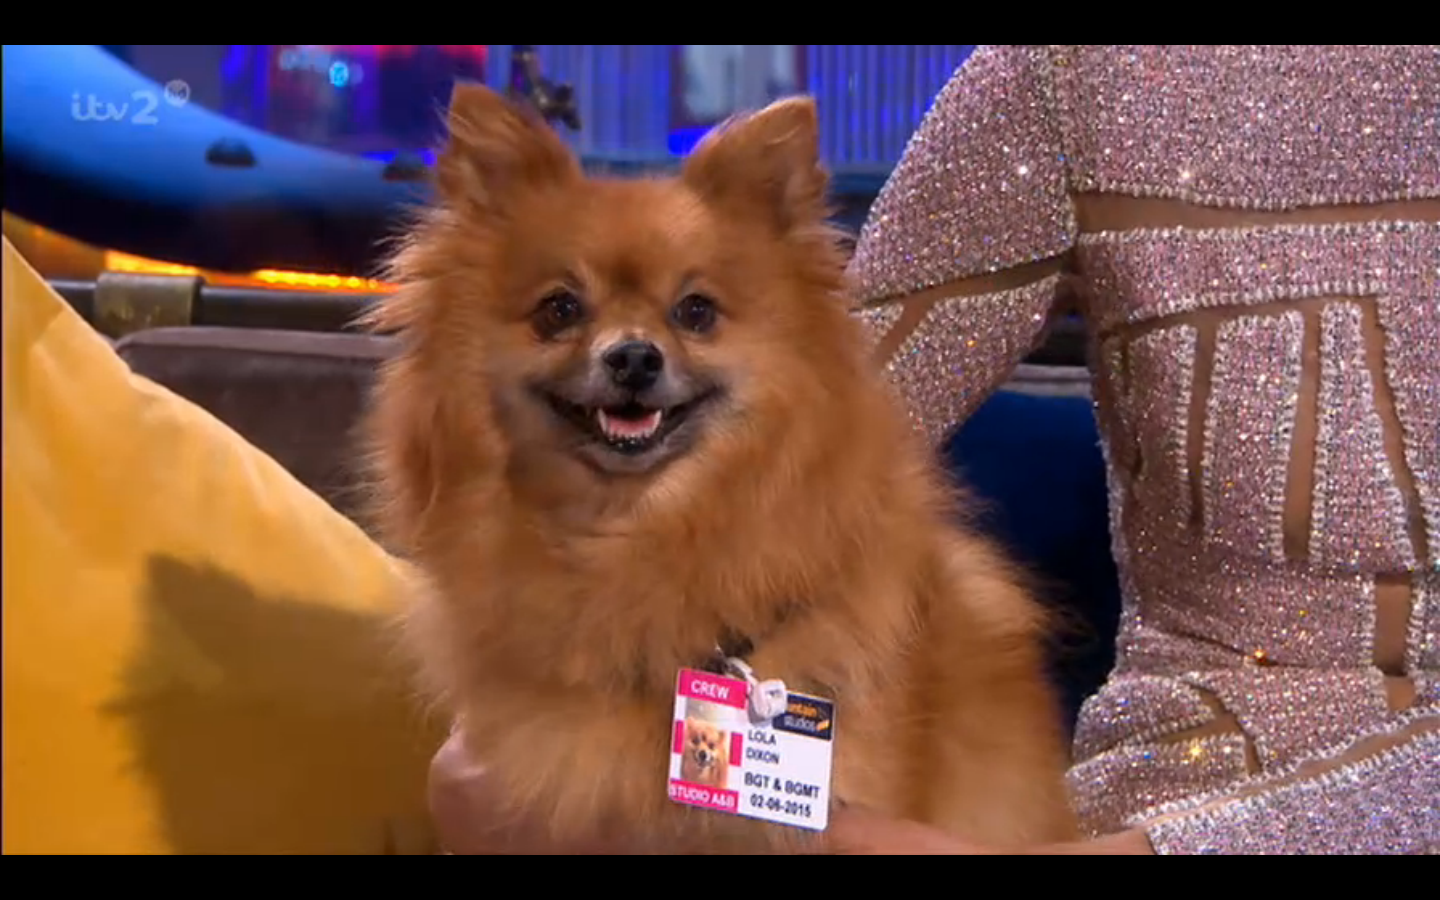 """@itv2: Lola's got that Friday feeling 🐶 @AleshaOfficial #BGMT http://t.co/hVqFFXHLOa"" Lola is a superstar! 💎"